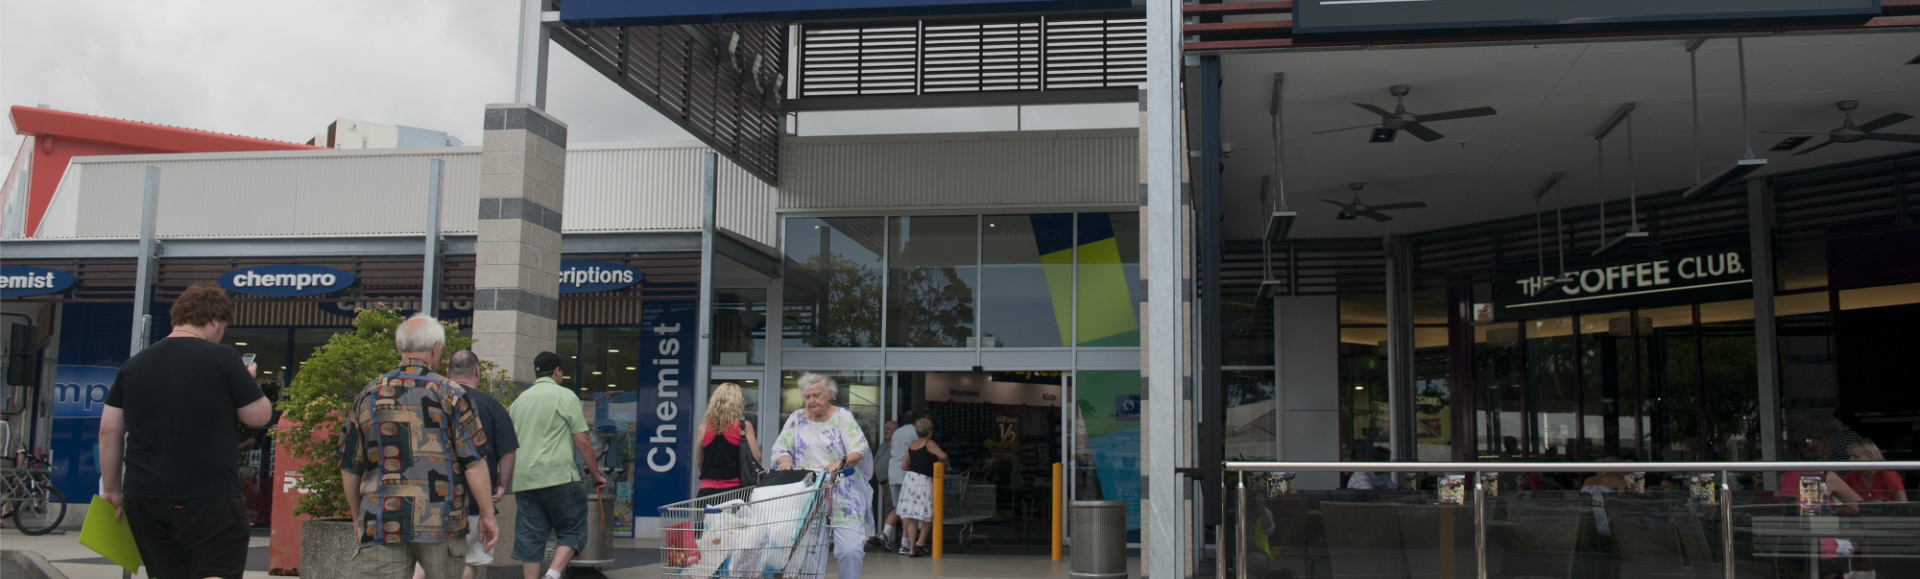 Burleigh Heads Main Entrance to Shopping Centre  1920x580px